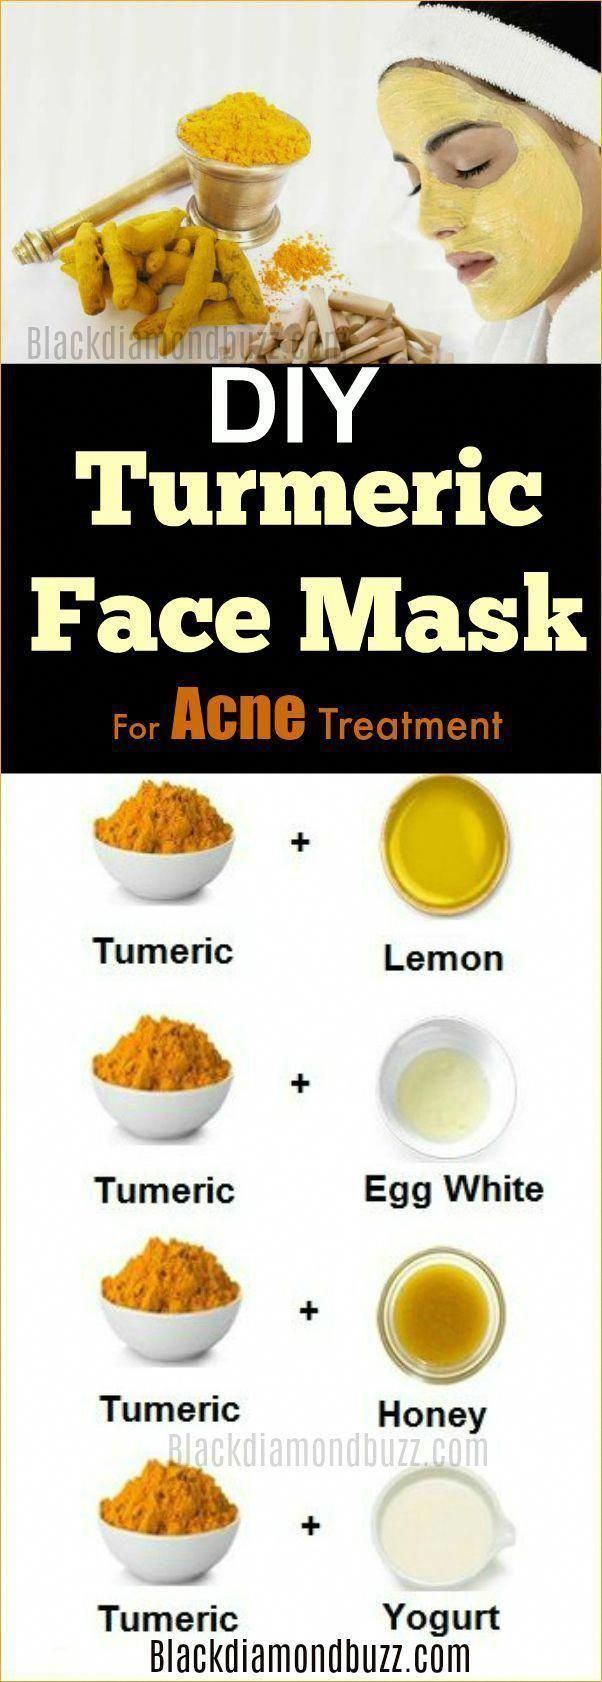 #acne #Dark #DIY #Face #Mask #Scars